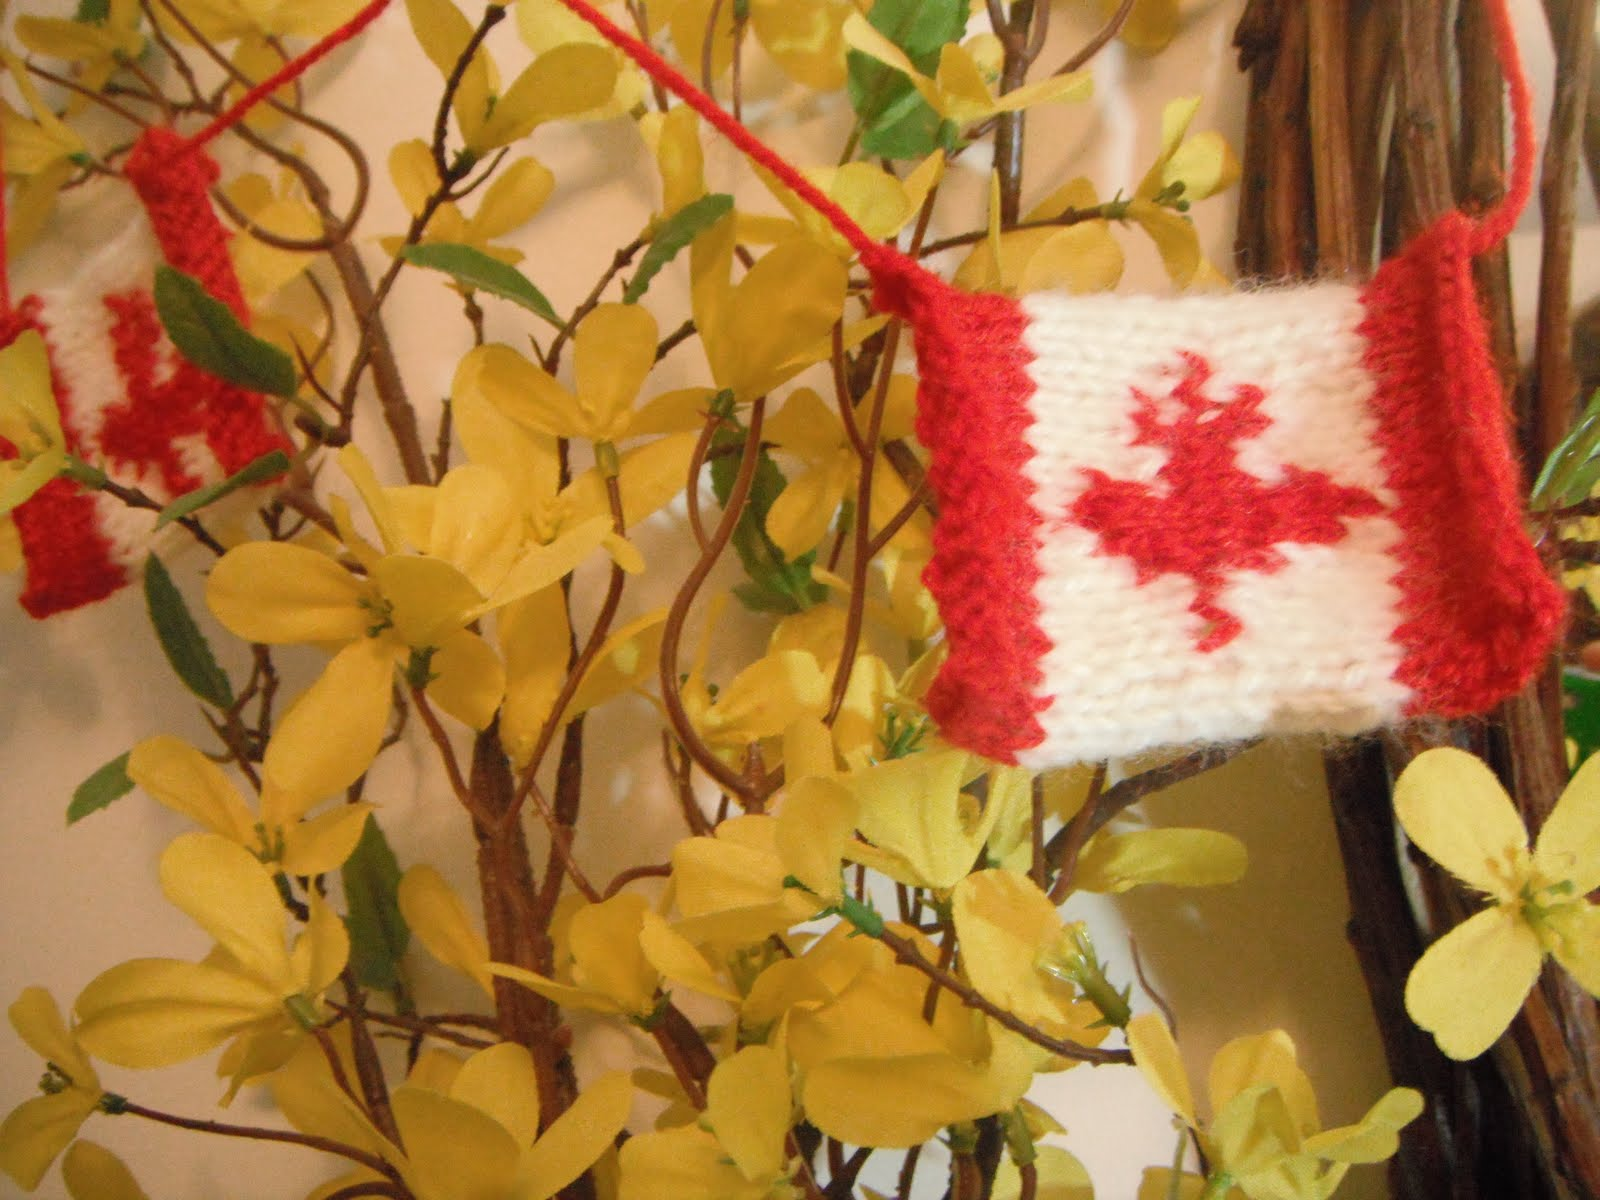 Honey Nutbrown S Knitting Canadian Flag Garland Pattern